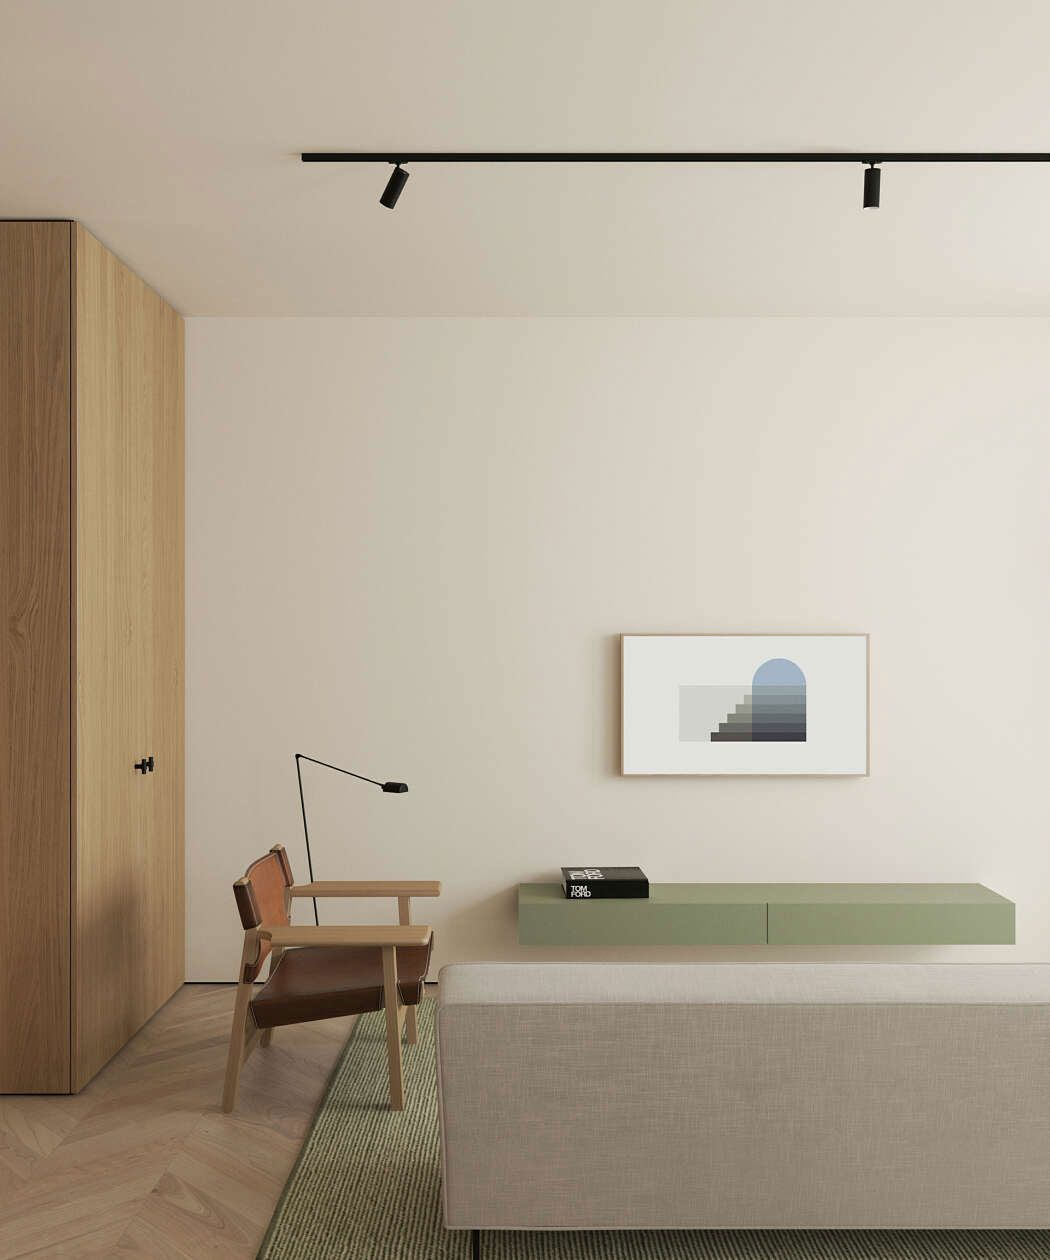 This Modern Scandinavian Style Apartment Is A Lesson In Warm Minimalism Nordic Design In 2020 Apartment Interior Minimalist Interior Design Minimalism Interior